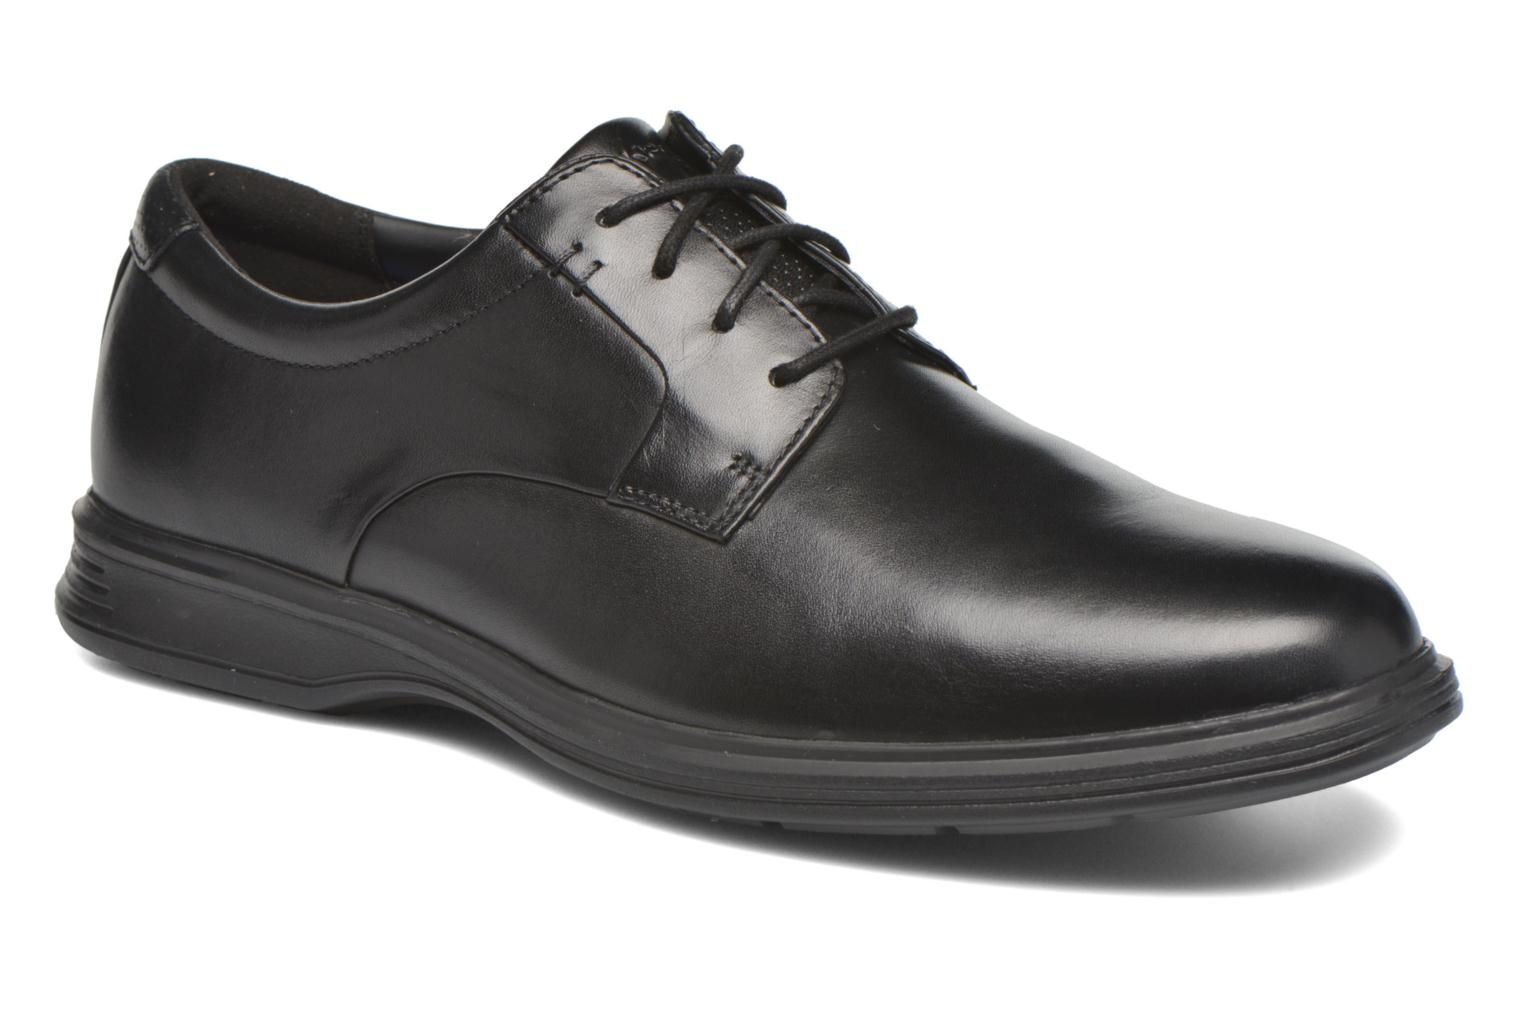 Zapatos con cordones Rockport DP2 Light Plaintoe Ox Negro vista de detalle / par